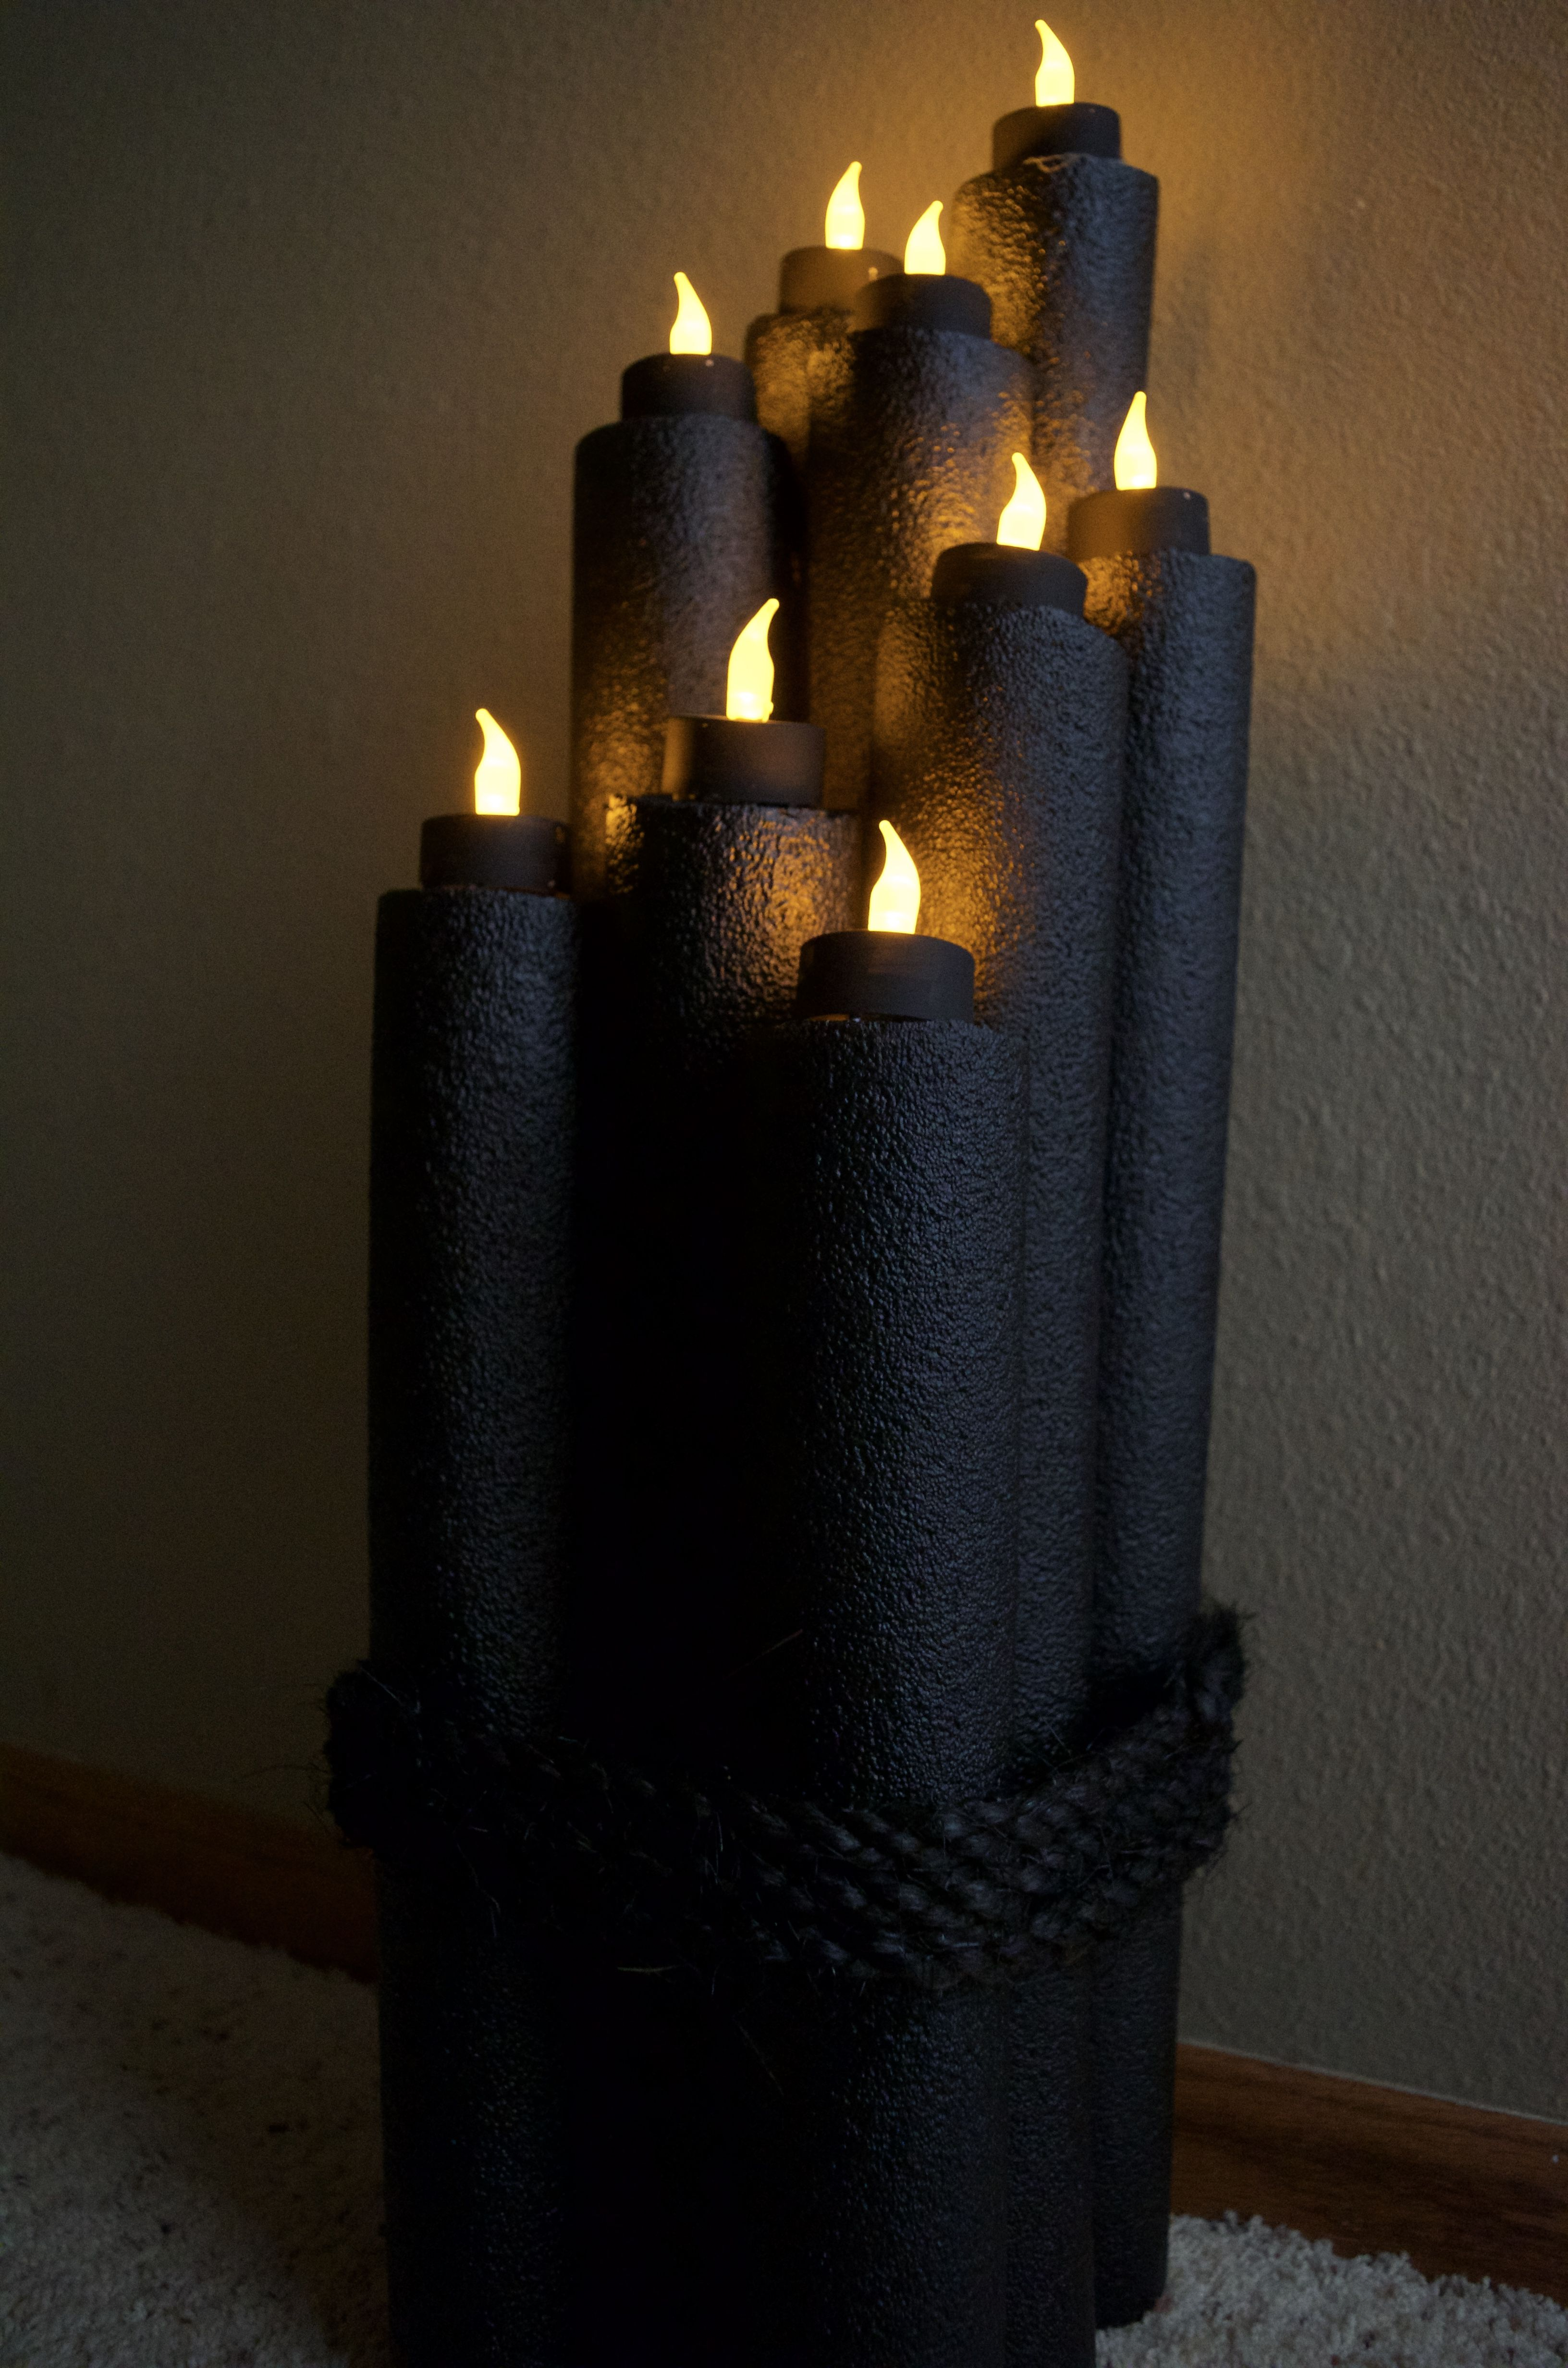 Recycled Pool Noodle Halloween  Harry Potter Decor Idea Inspiring - Office Halloween Decor